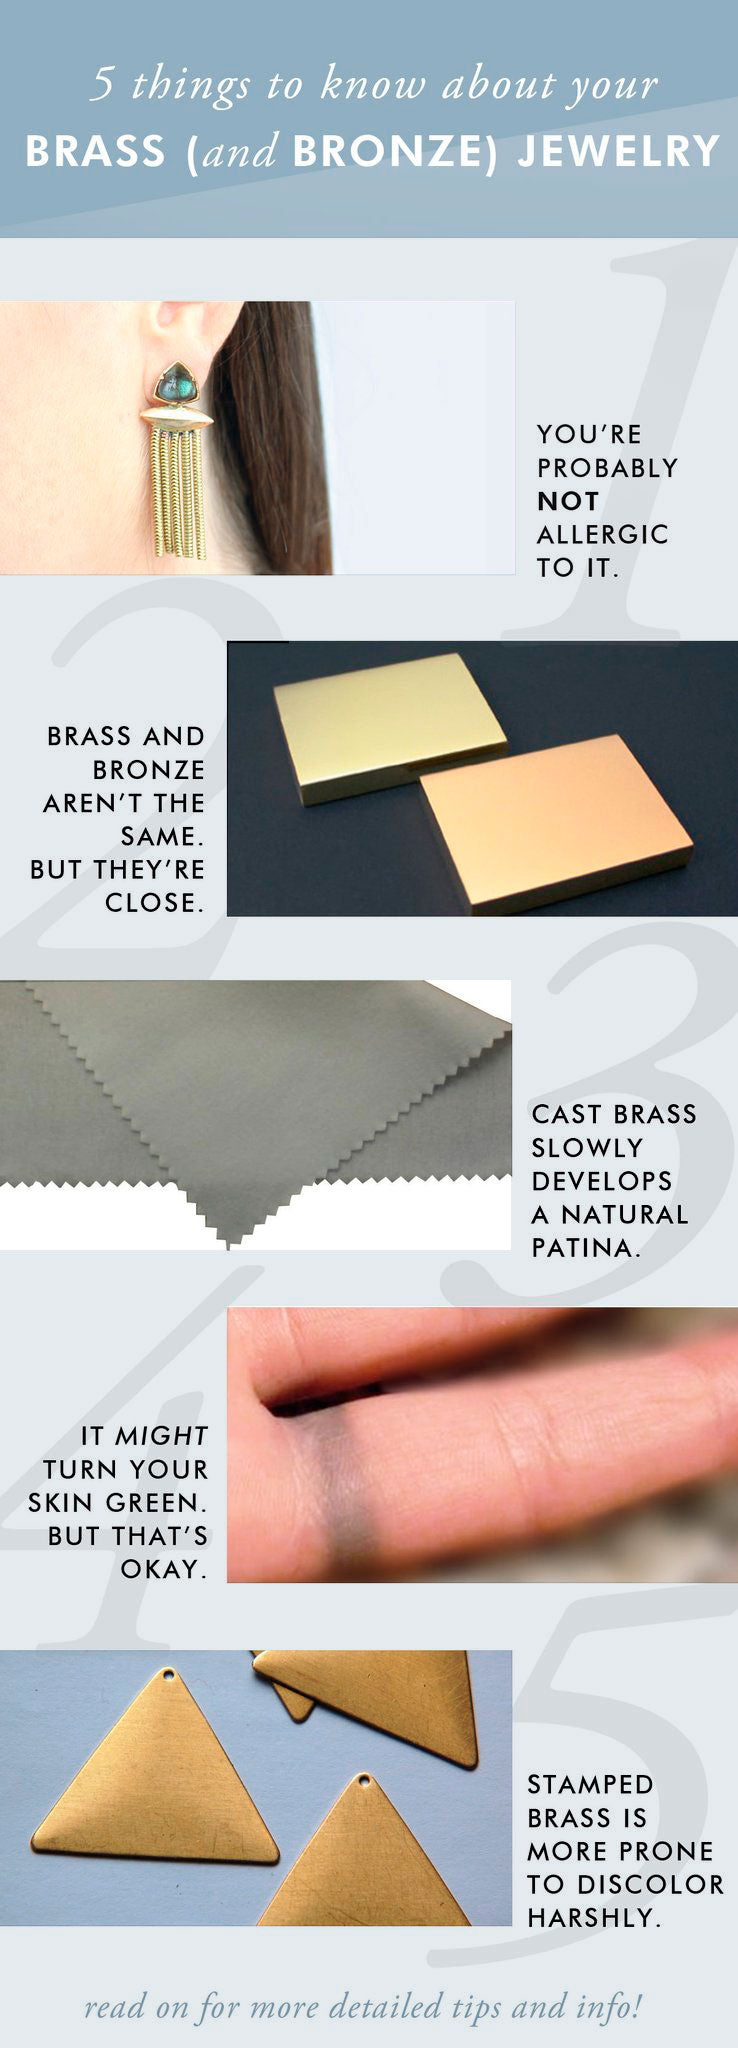 Brass jewelry tips you need to know